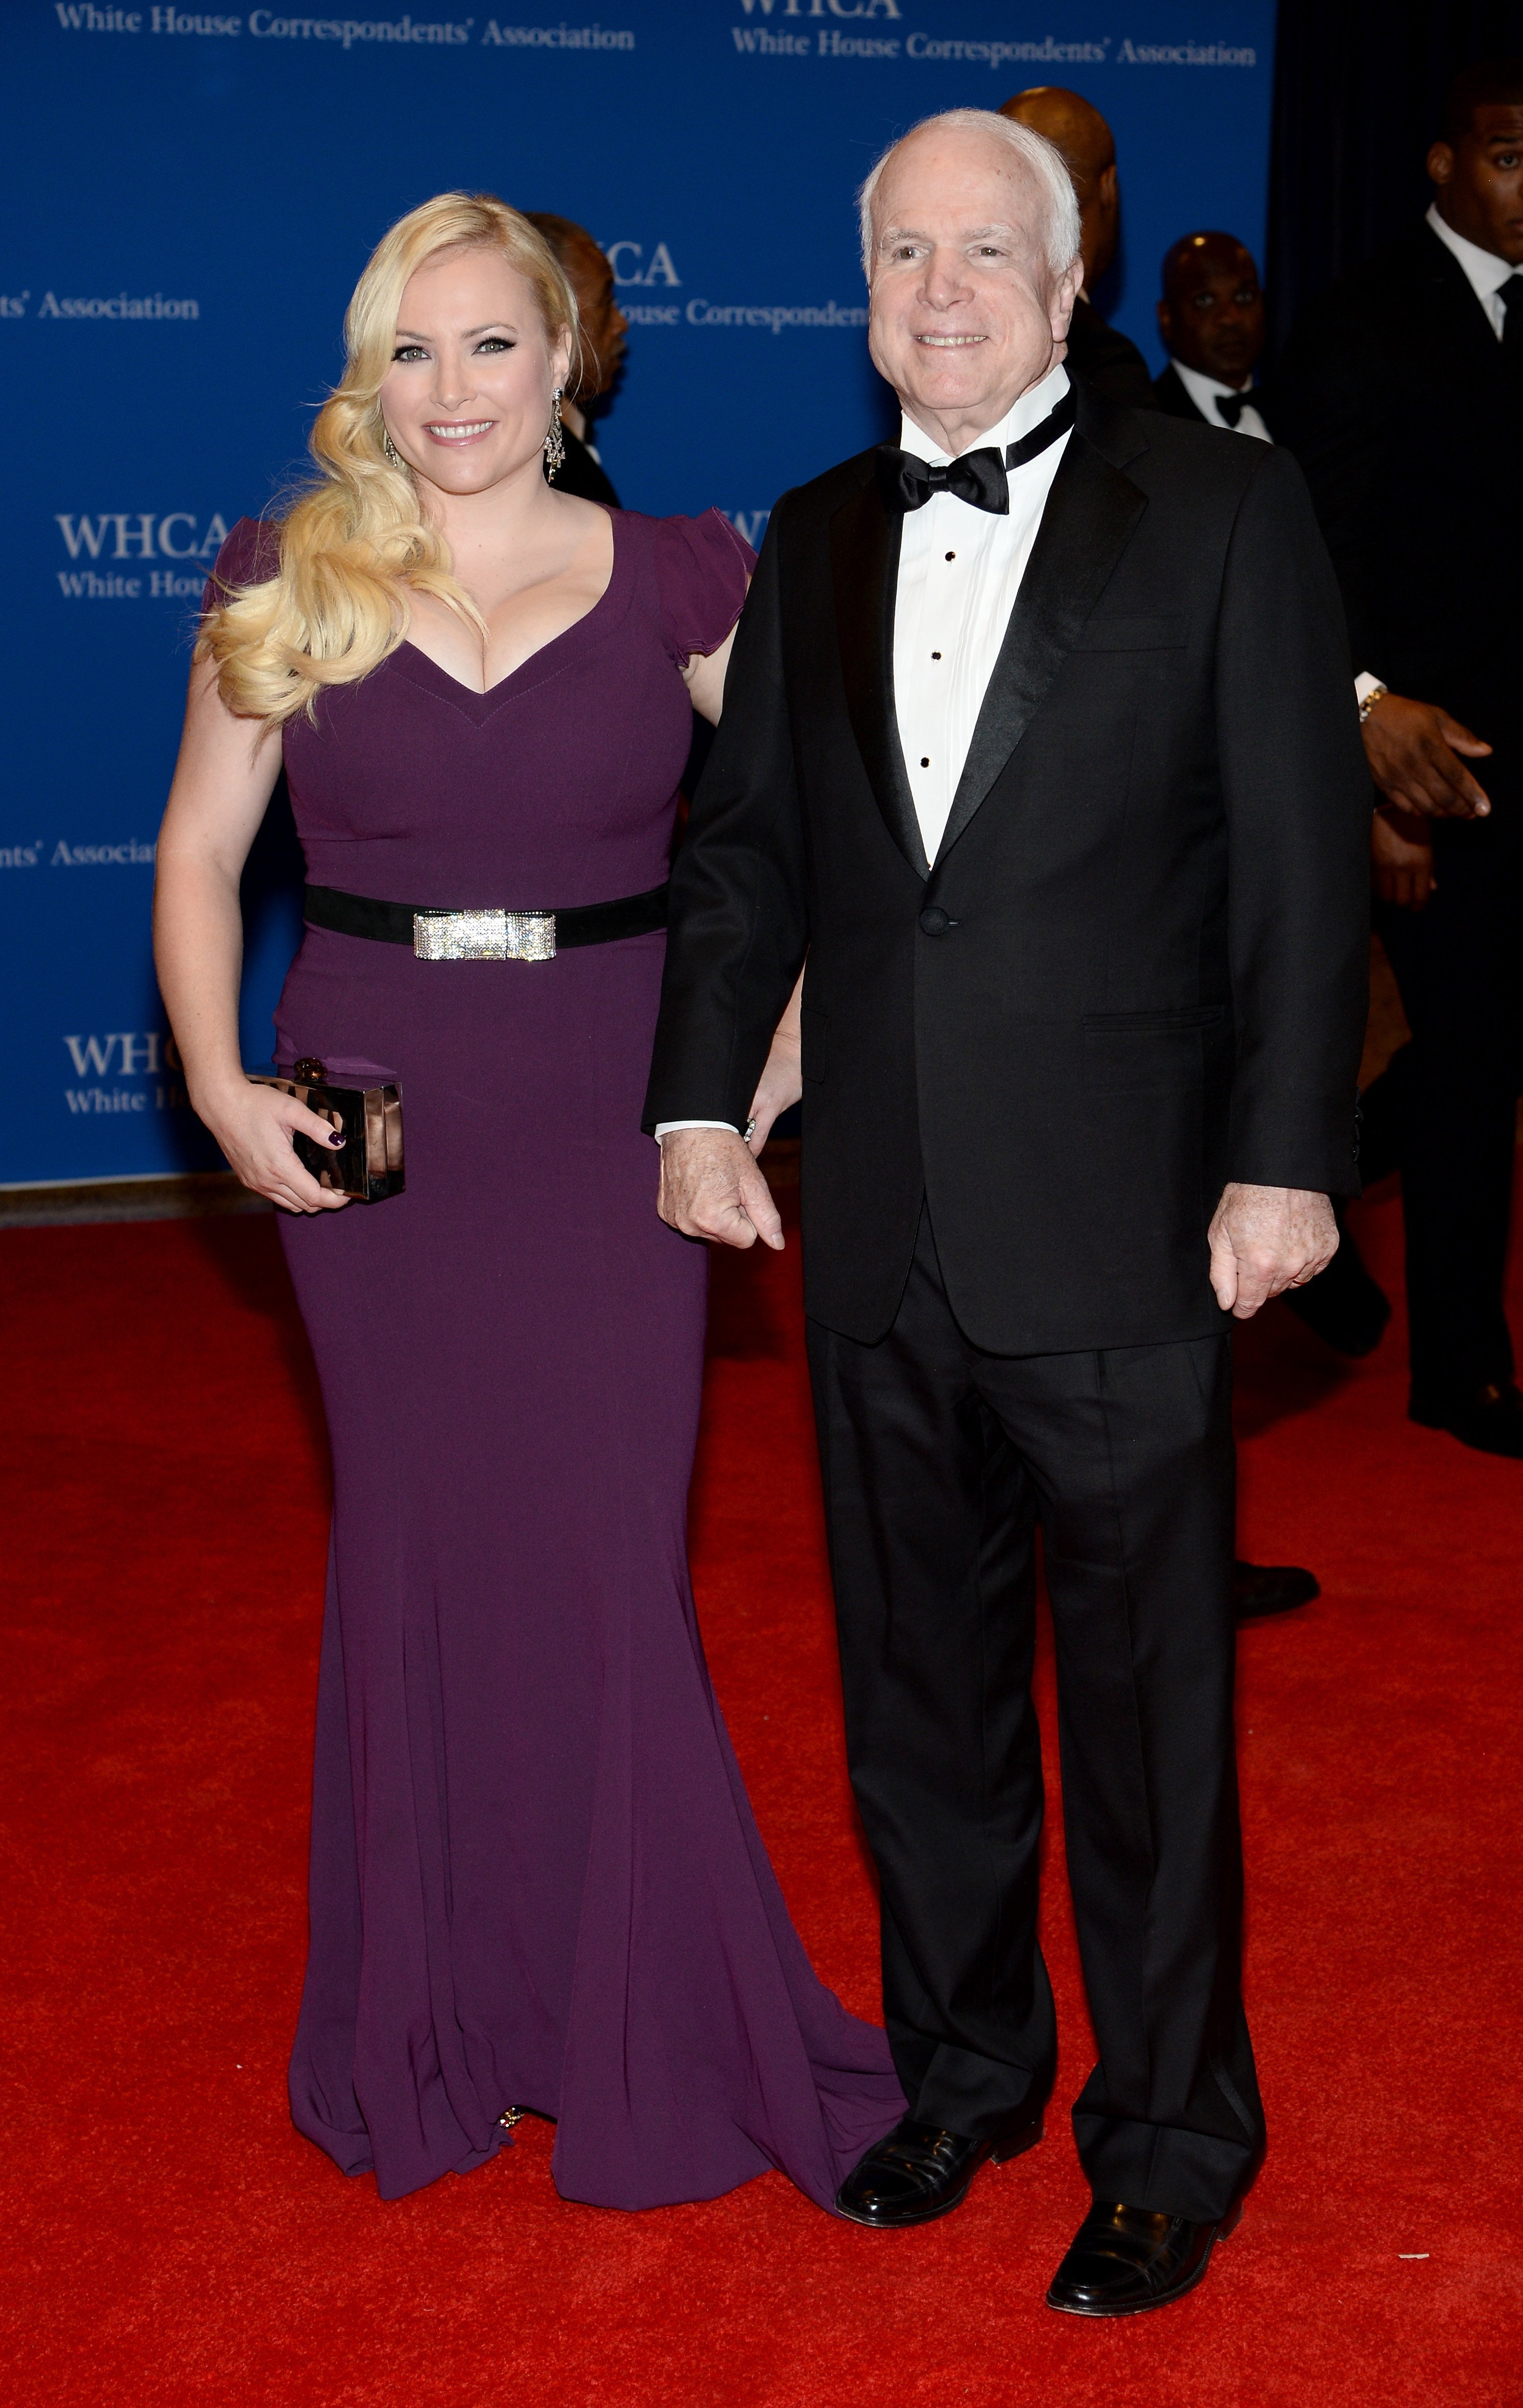 Meghan McCain and Senator John McCain at the 100th Annual White House Correspondents' Association Dinner at the Washington Hilton on May 3, 2014 in Washington, DC | Photo: Getty Images